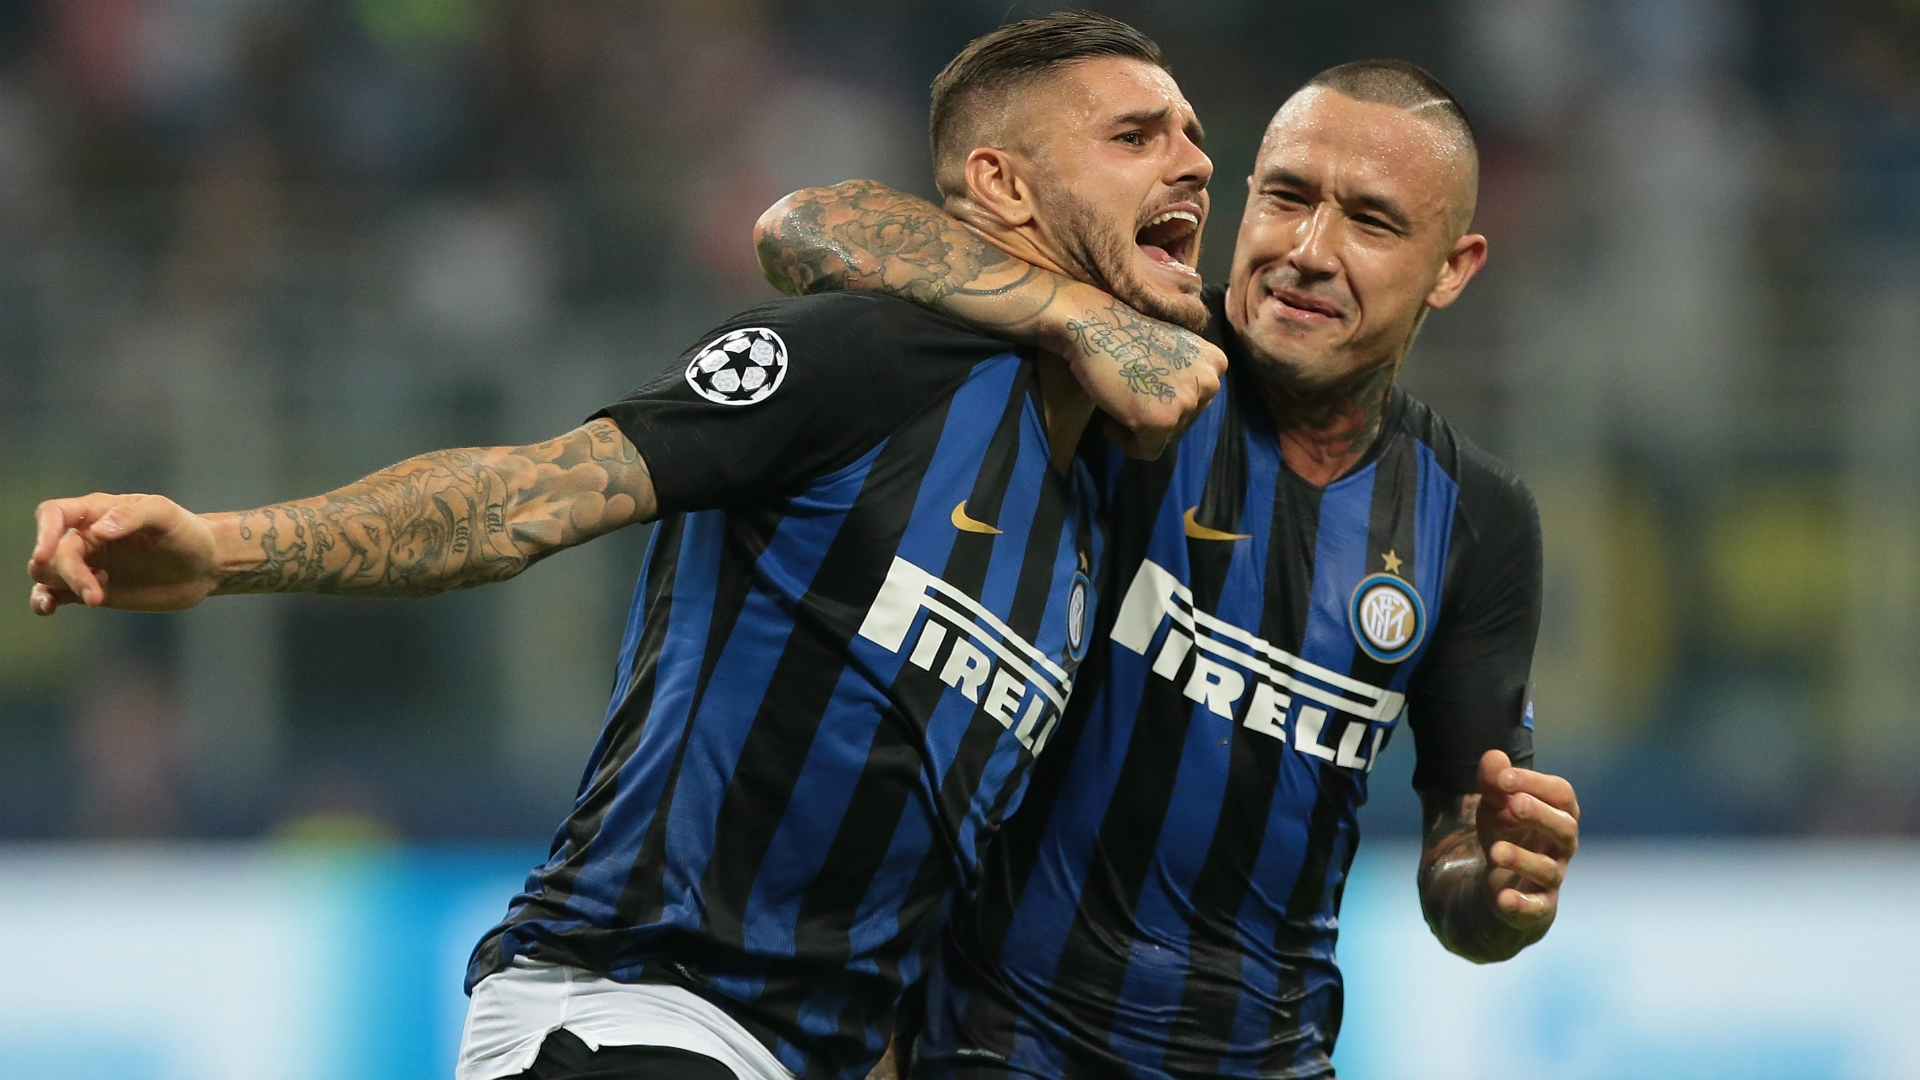 Mauro Icardi - scres a stunner in first day of the Champions League